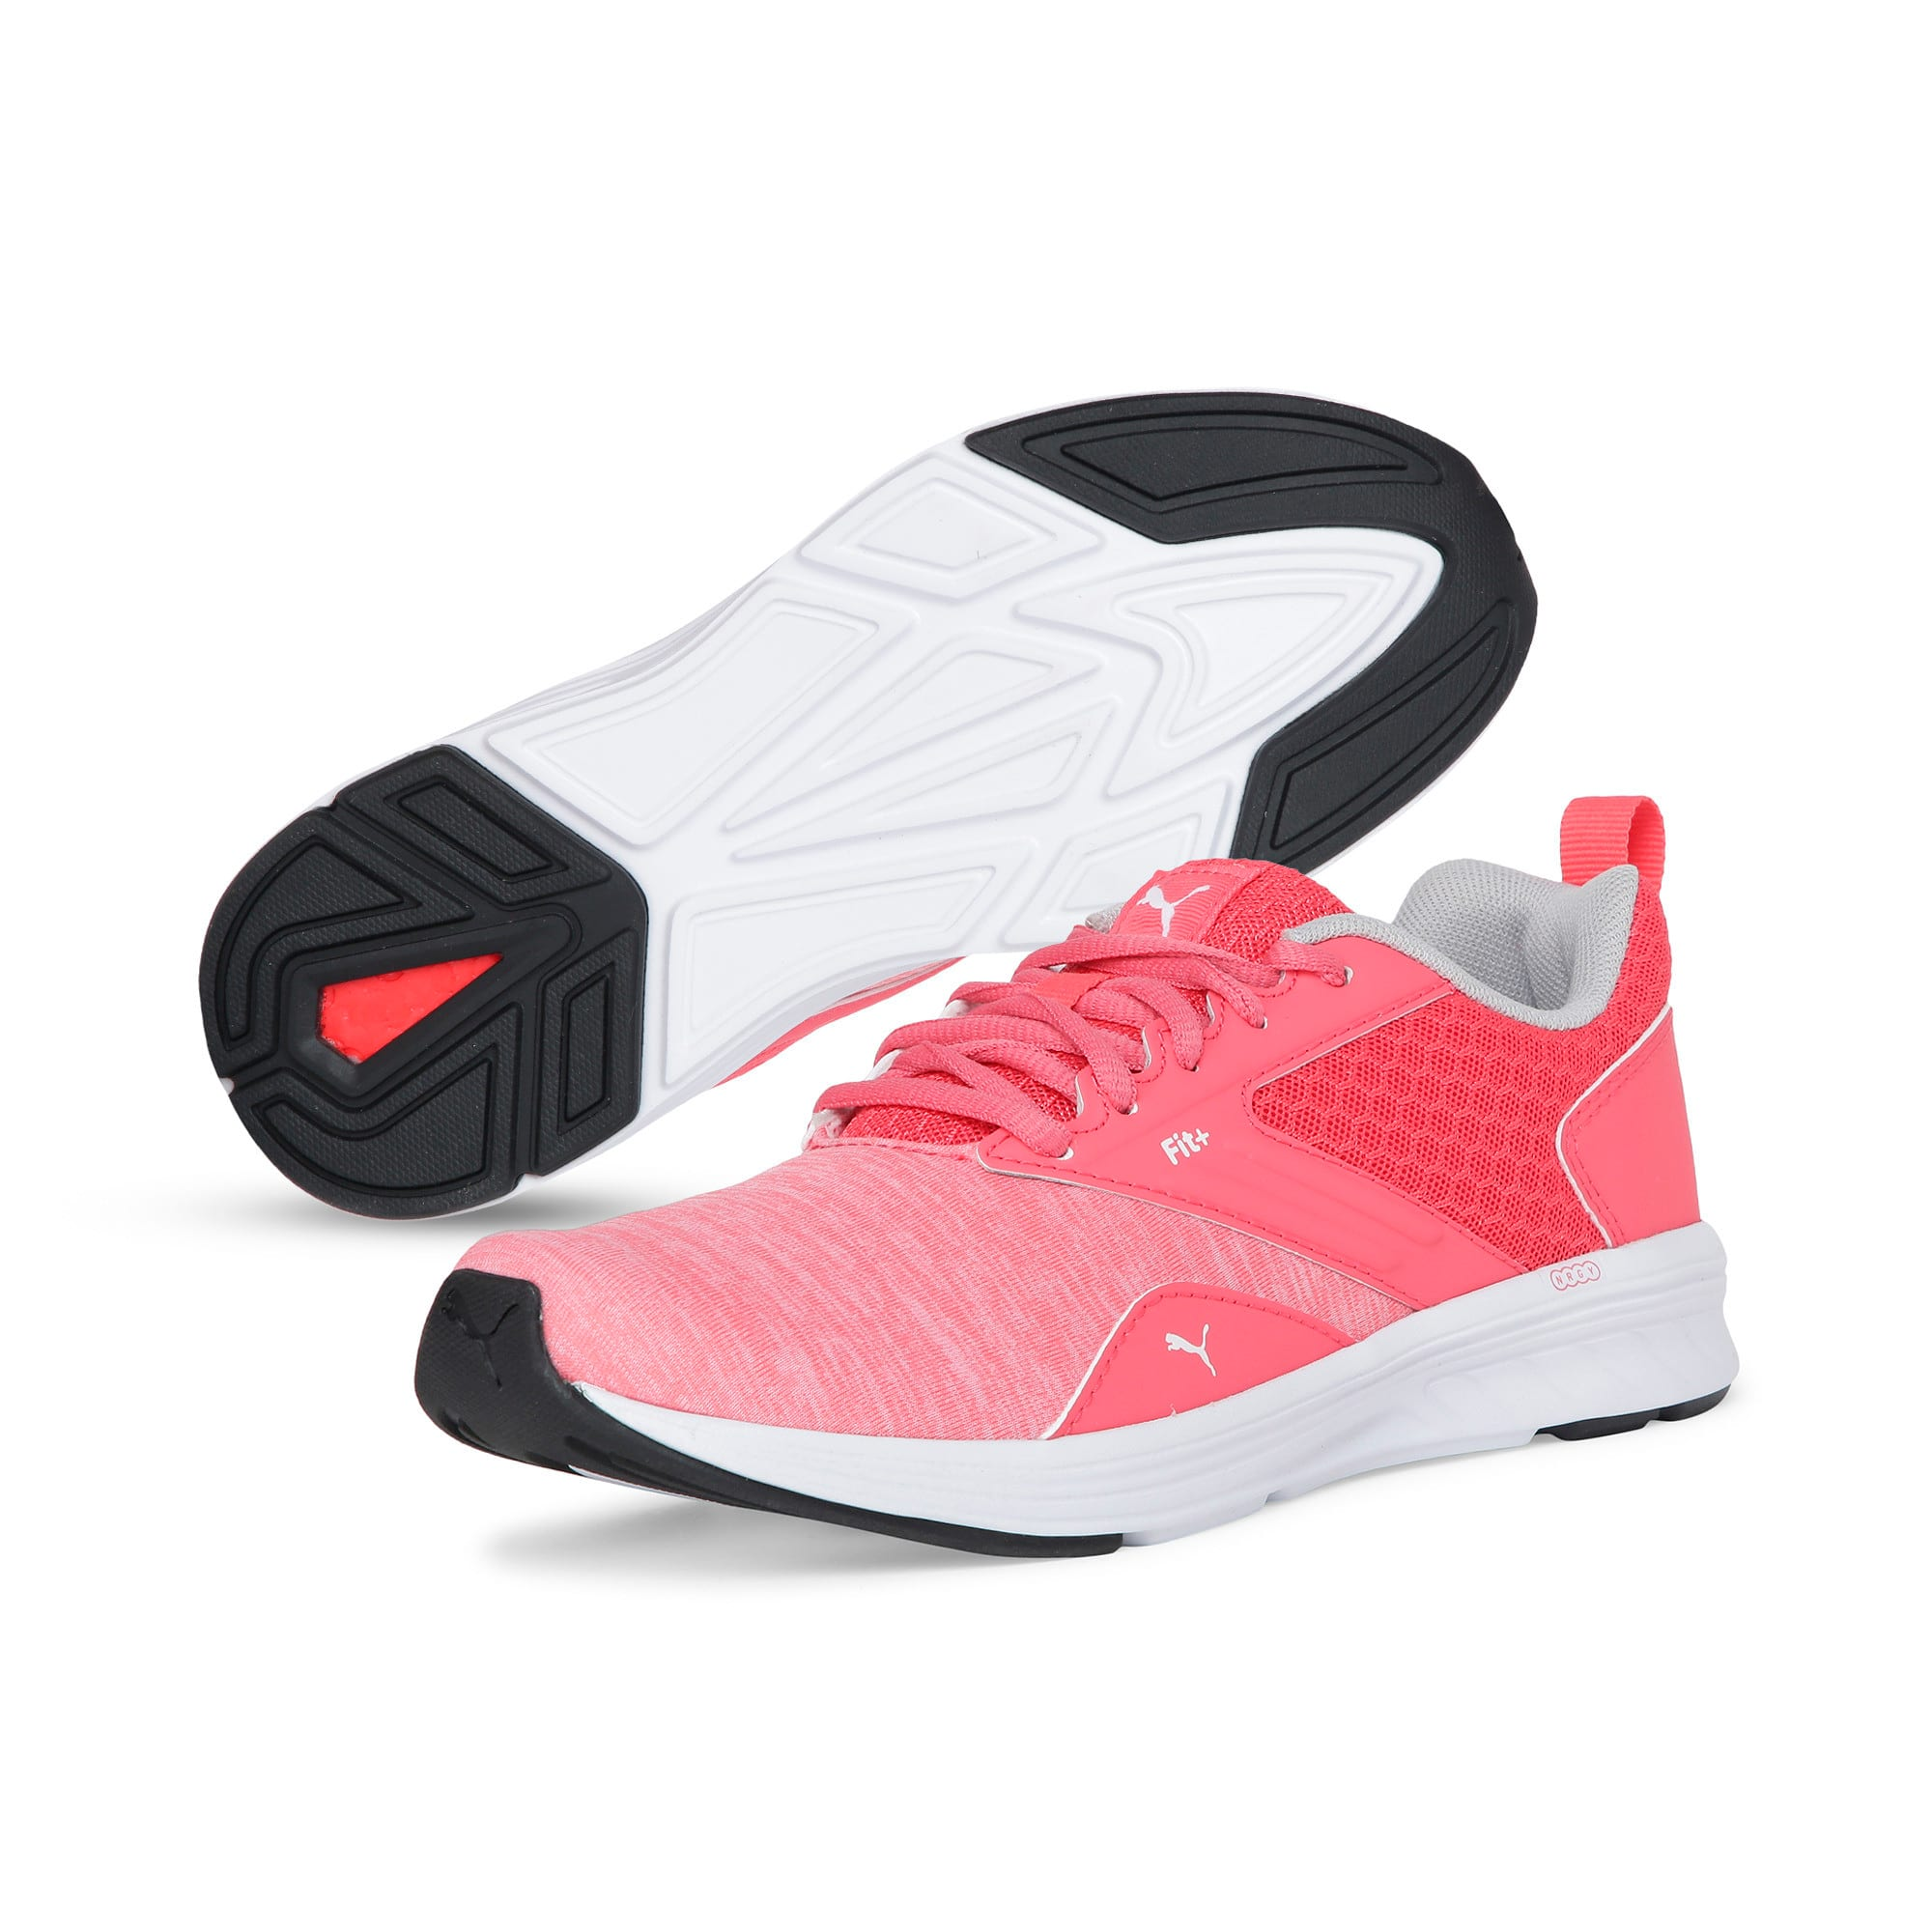 Thumbnail 2 of NRGY Comet Kids' Training Shoes, Calypso Coral-Puma White, medium-IND